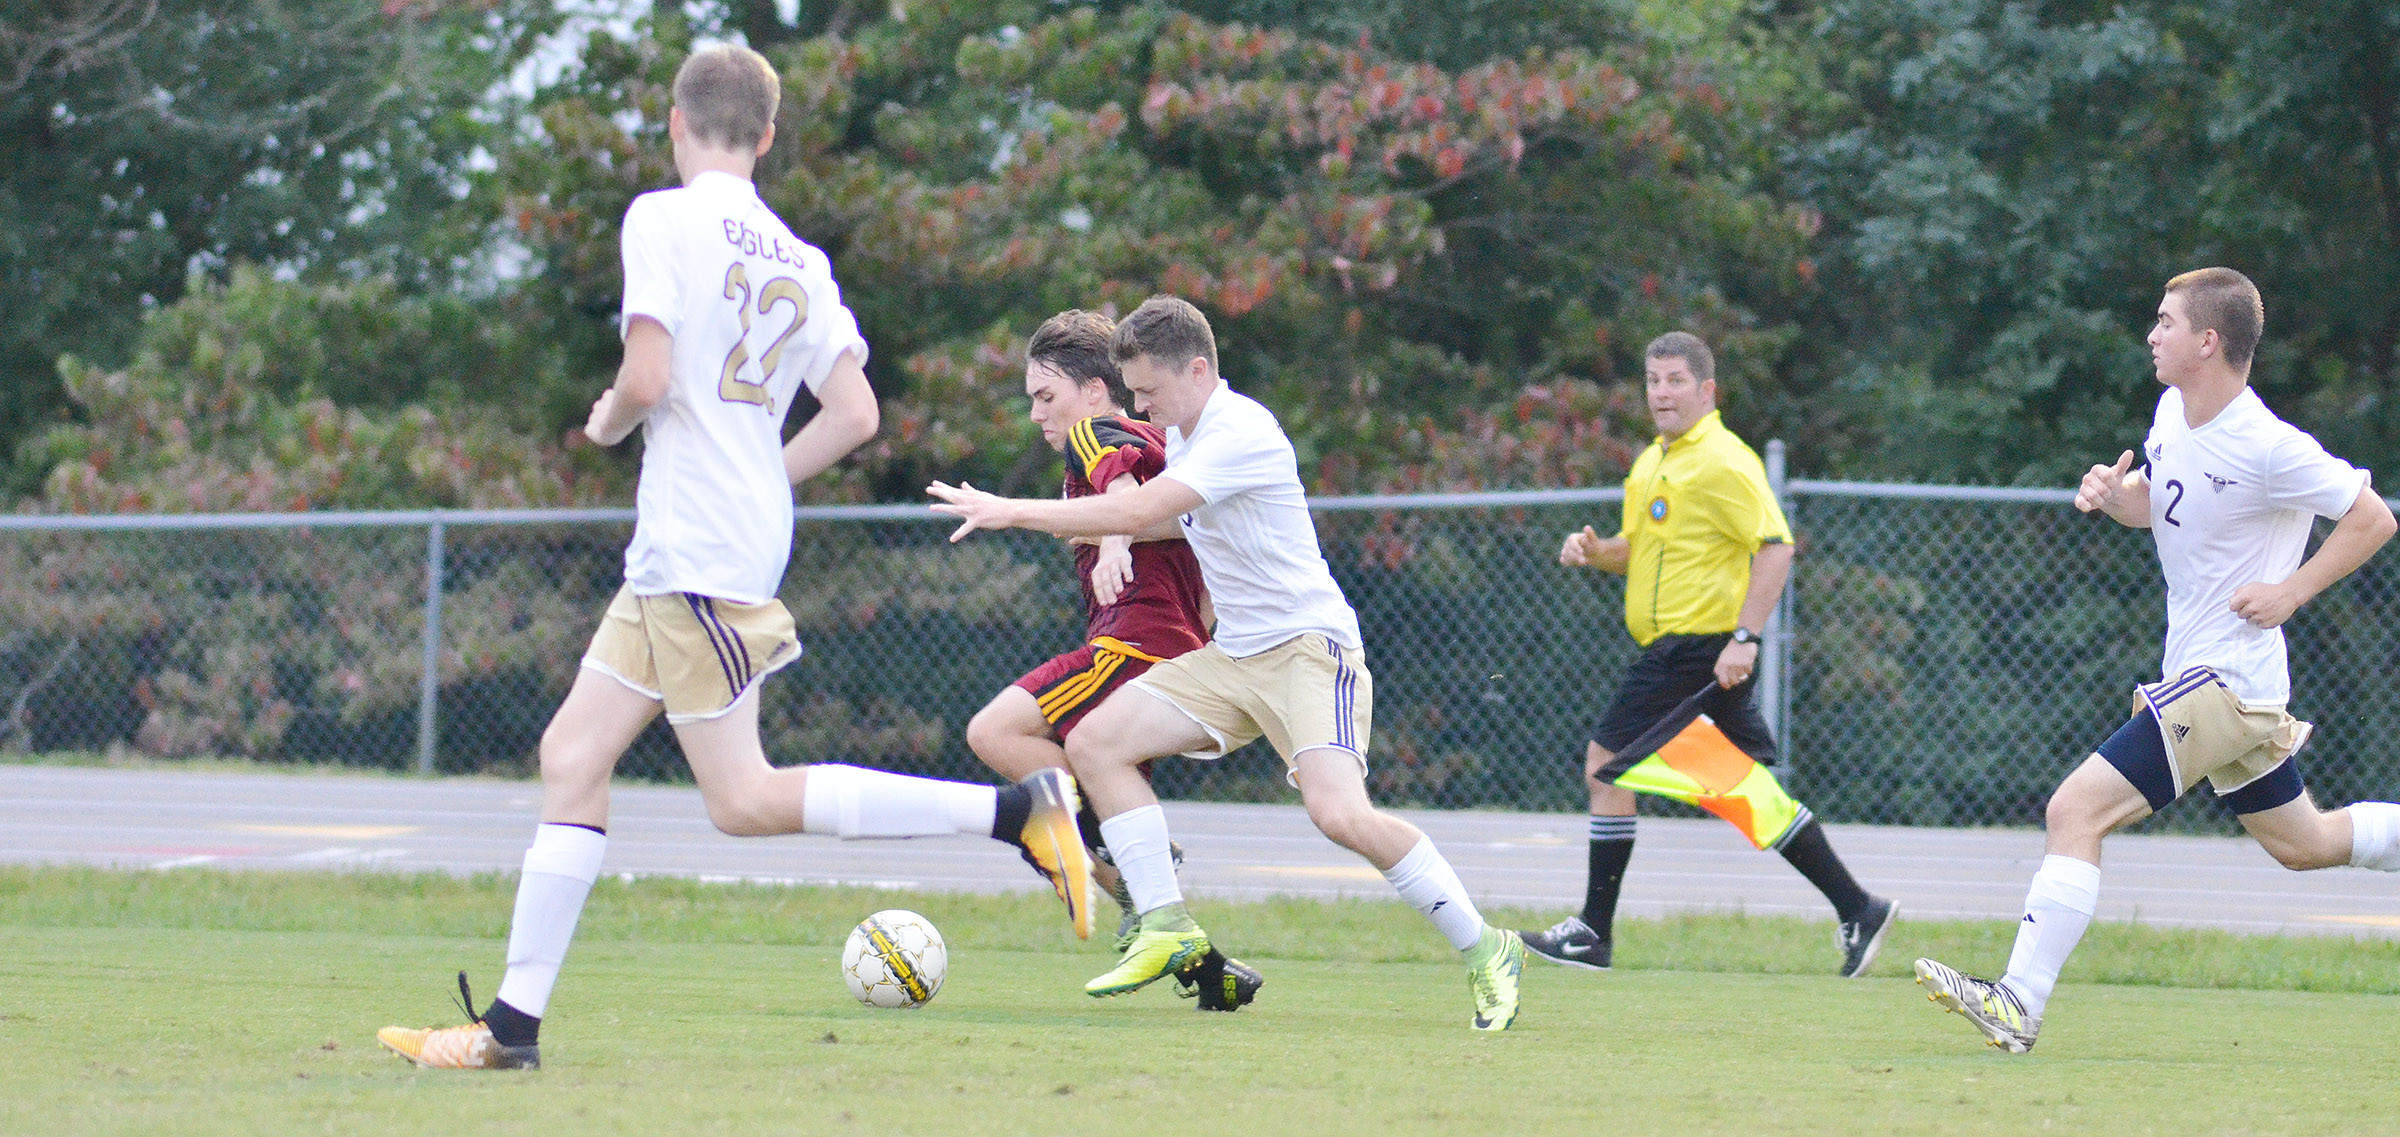 CHS senior Bryce Richardson, center, fights for the ball.